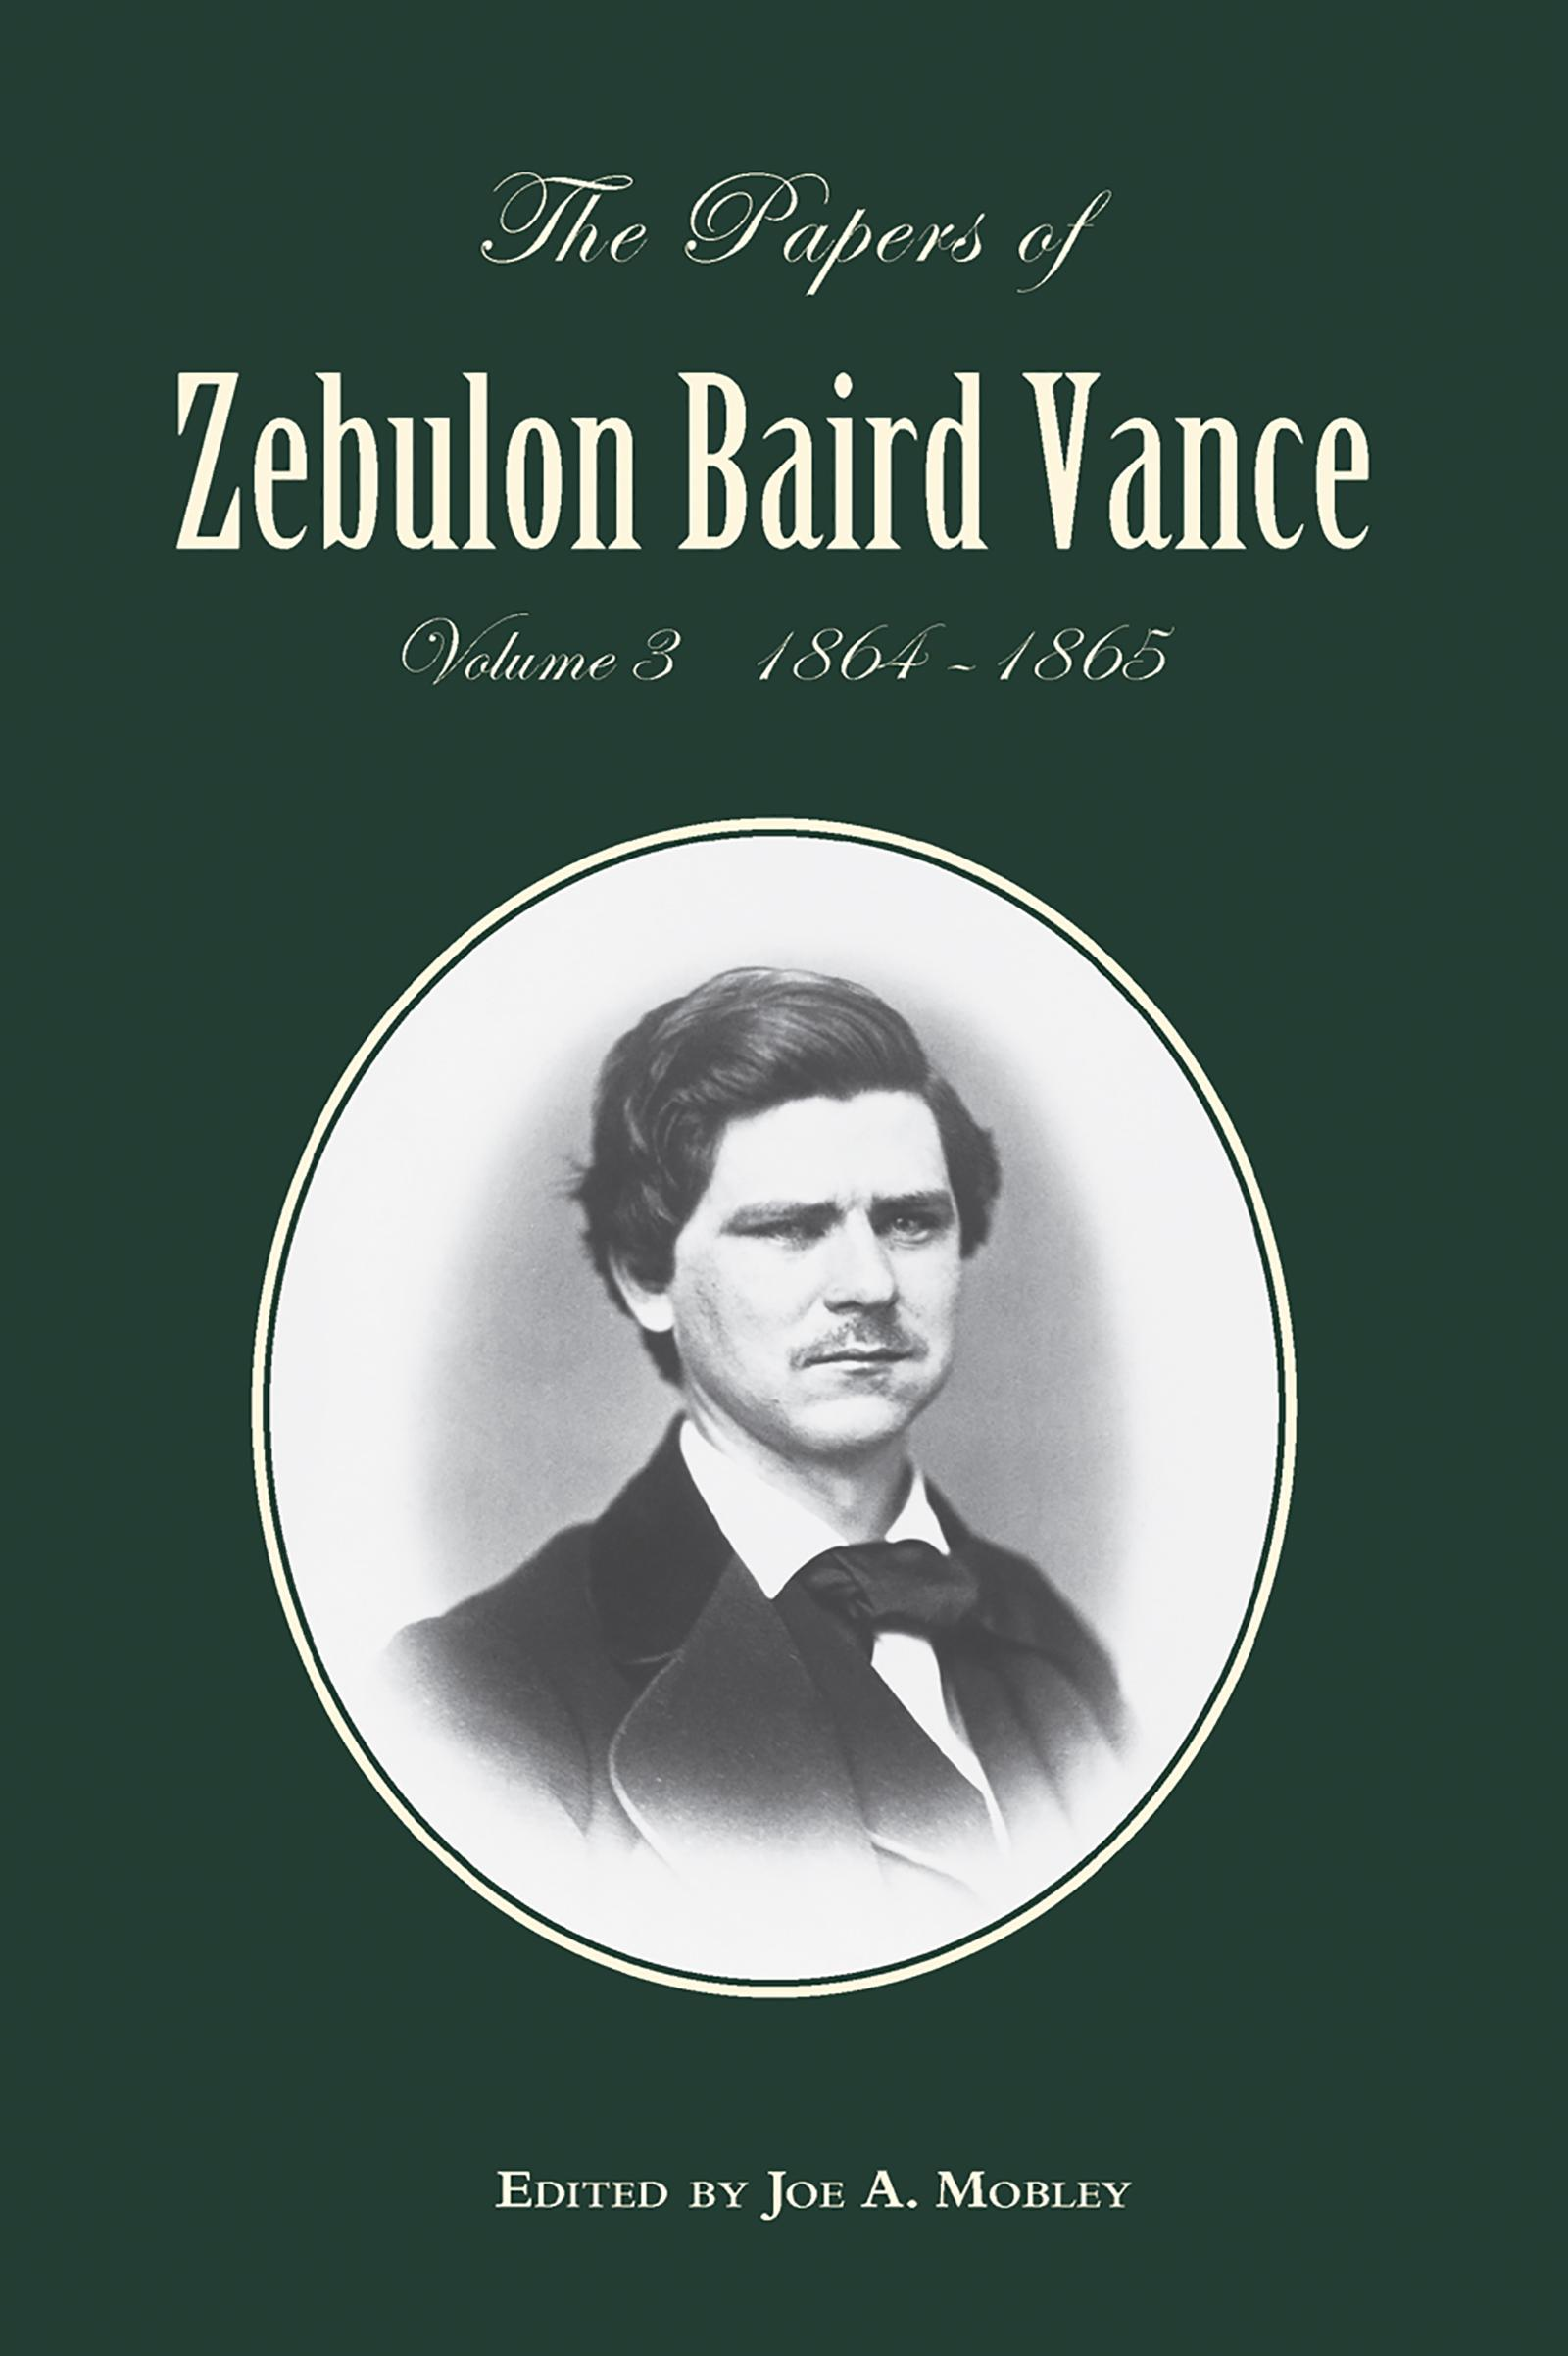 papers of zebulon baird vance  the papers of zebulon baird vance  volume 3  hardcover